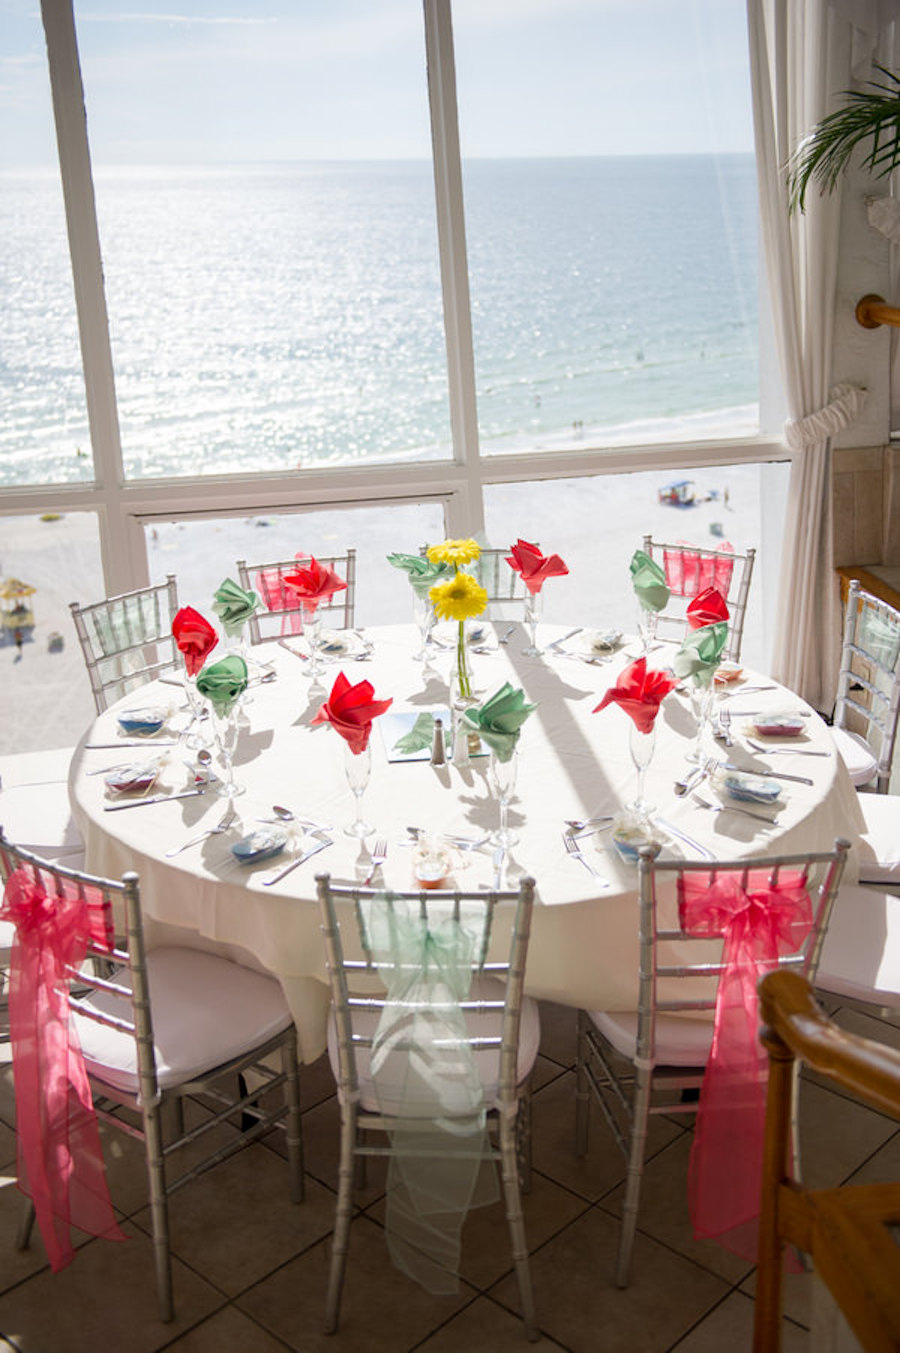 Wedding Reception Tablescape with Chiavari Chairs with Organza Pink and Mint Green Sashes and Colorful Coral and Mint Napkins with Yellow Centerpieces   St. Pete Wedding Photographer Andi Diamond Photography   St. Pete Beach Wedding Venue The Grand Plaza Hotel